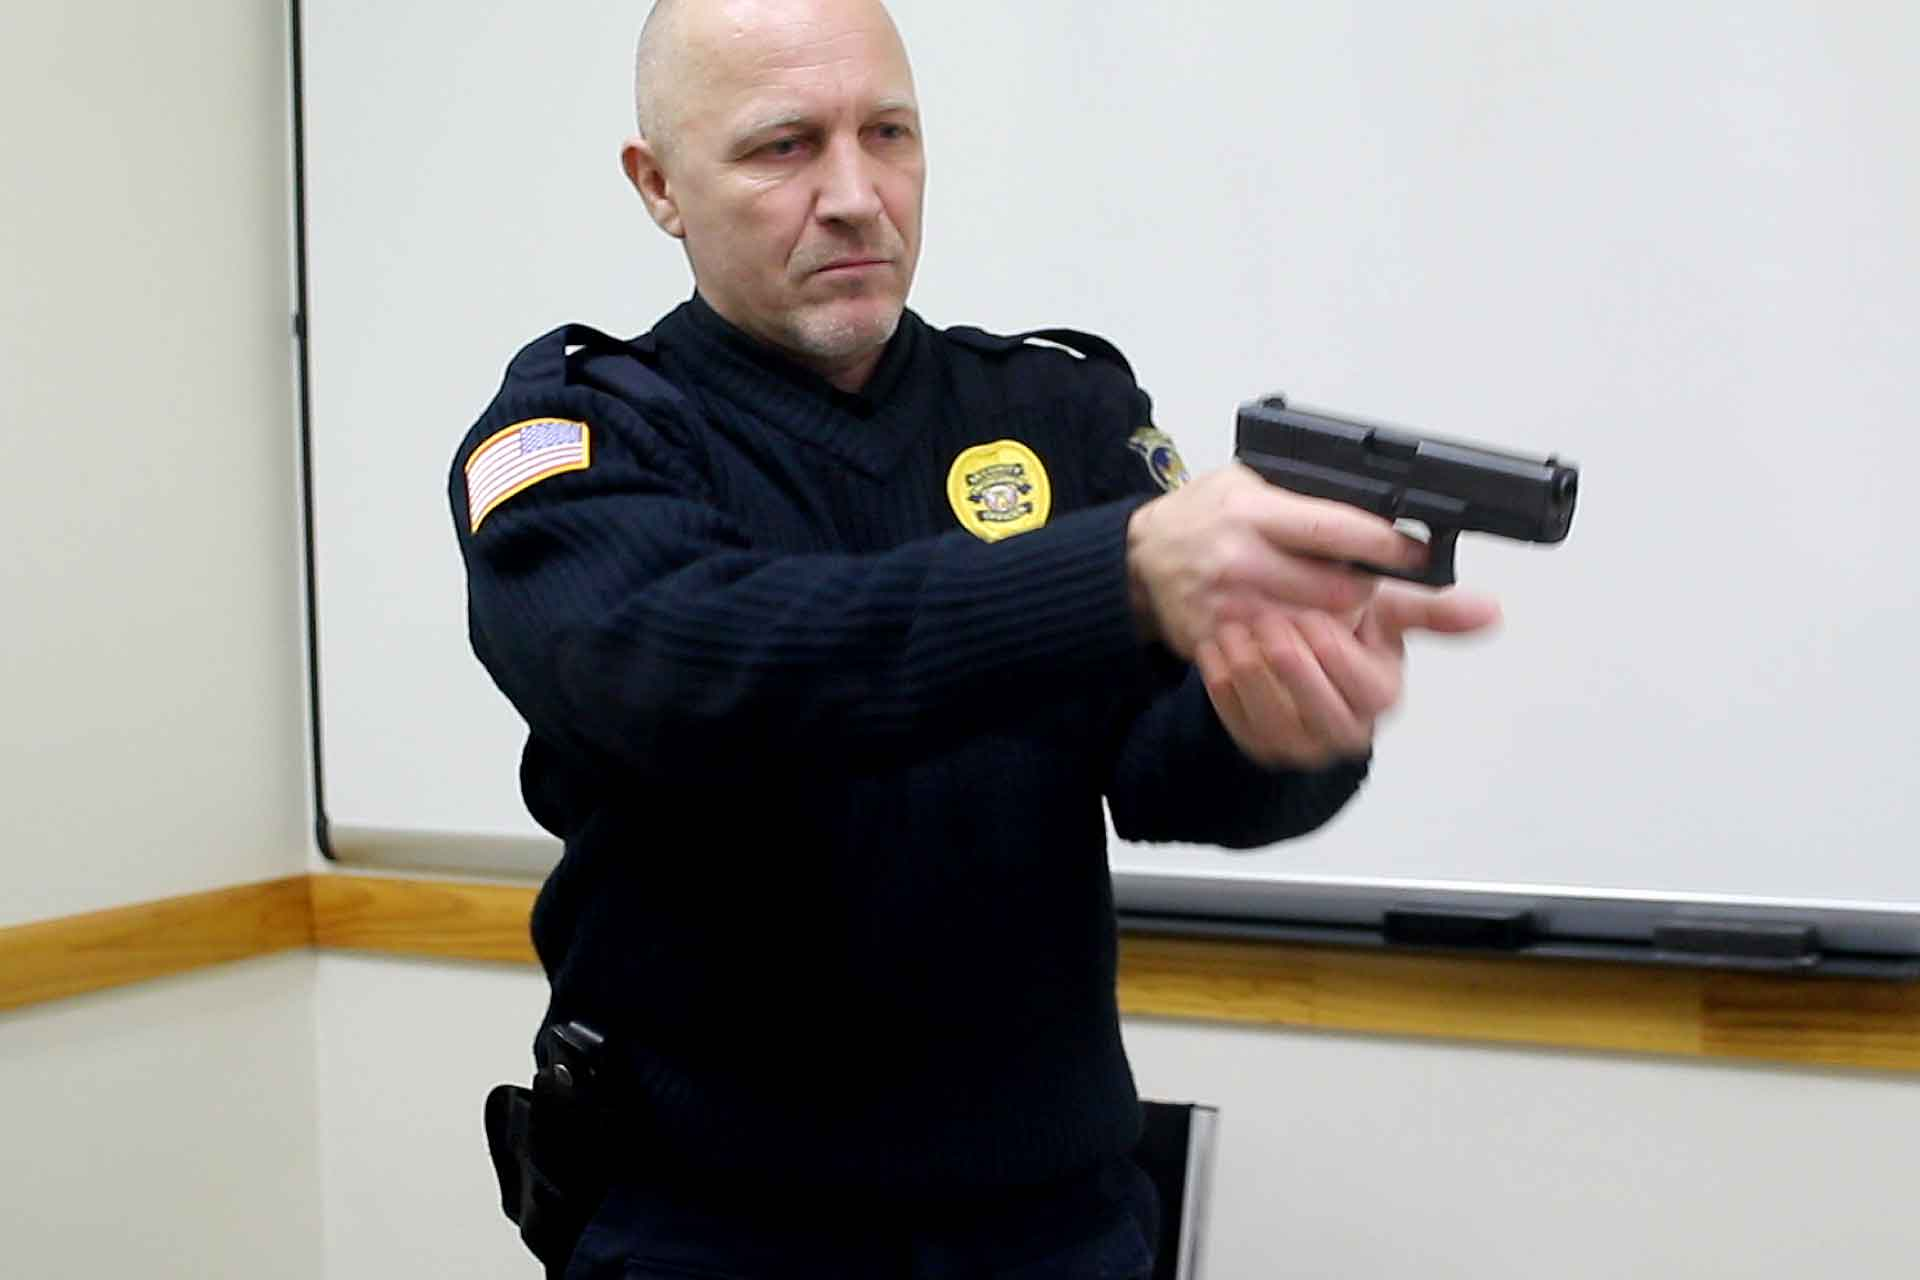 NYC Security Guard armed training